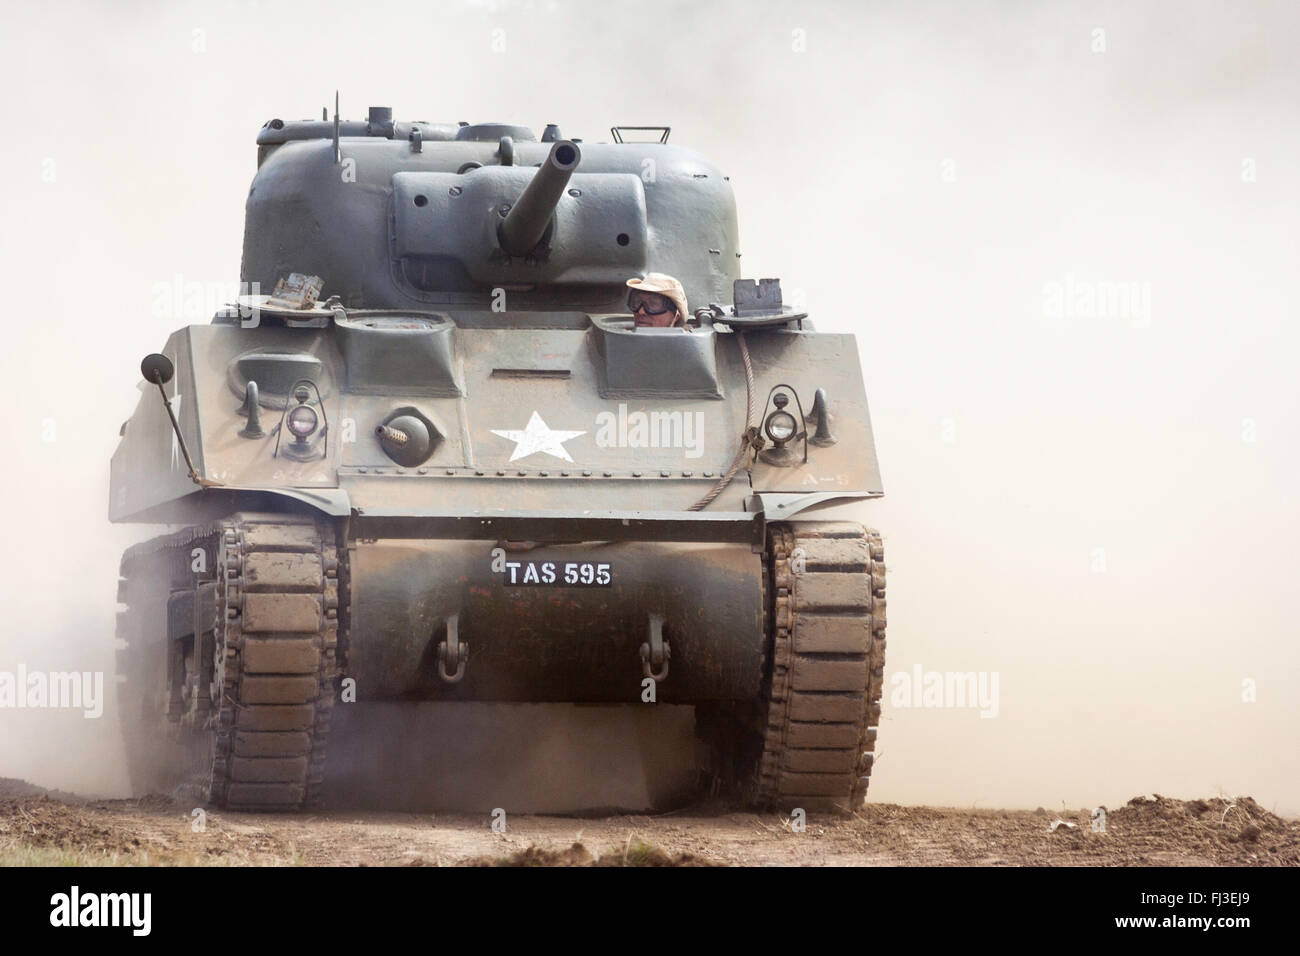 Second World War re-enactment. American M4 Sherman tank coming towards viewer at speed with lots of dust behind - Stock Image